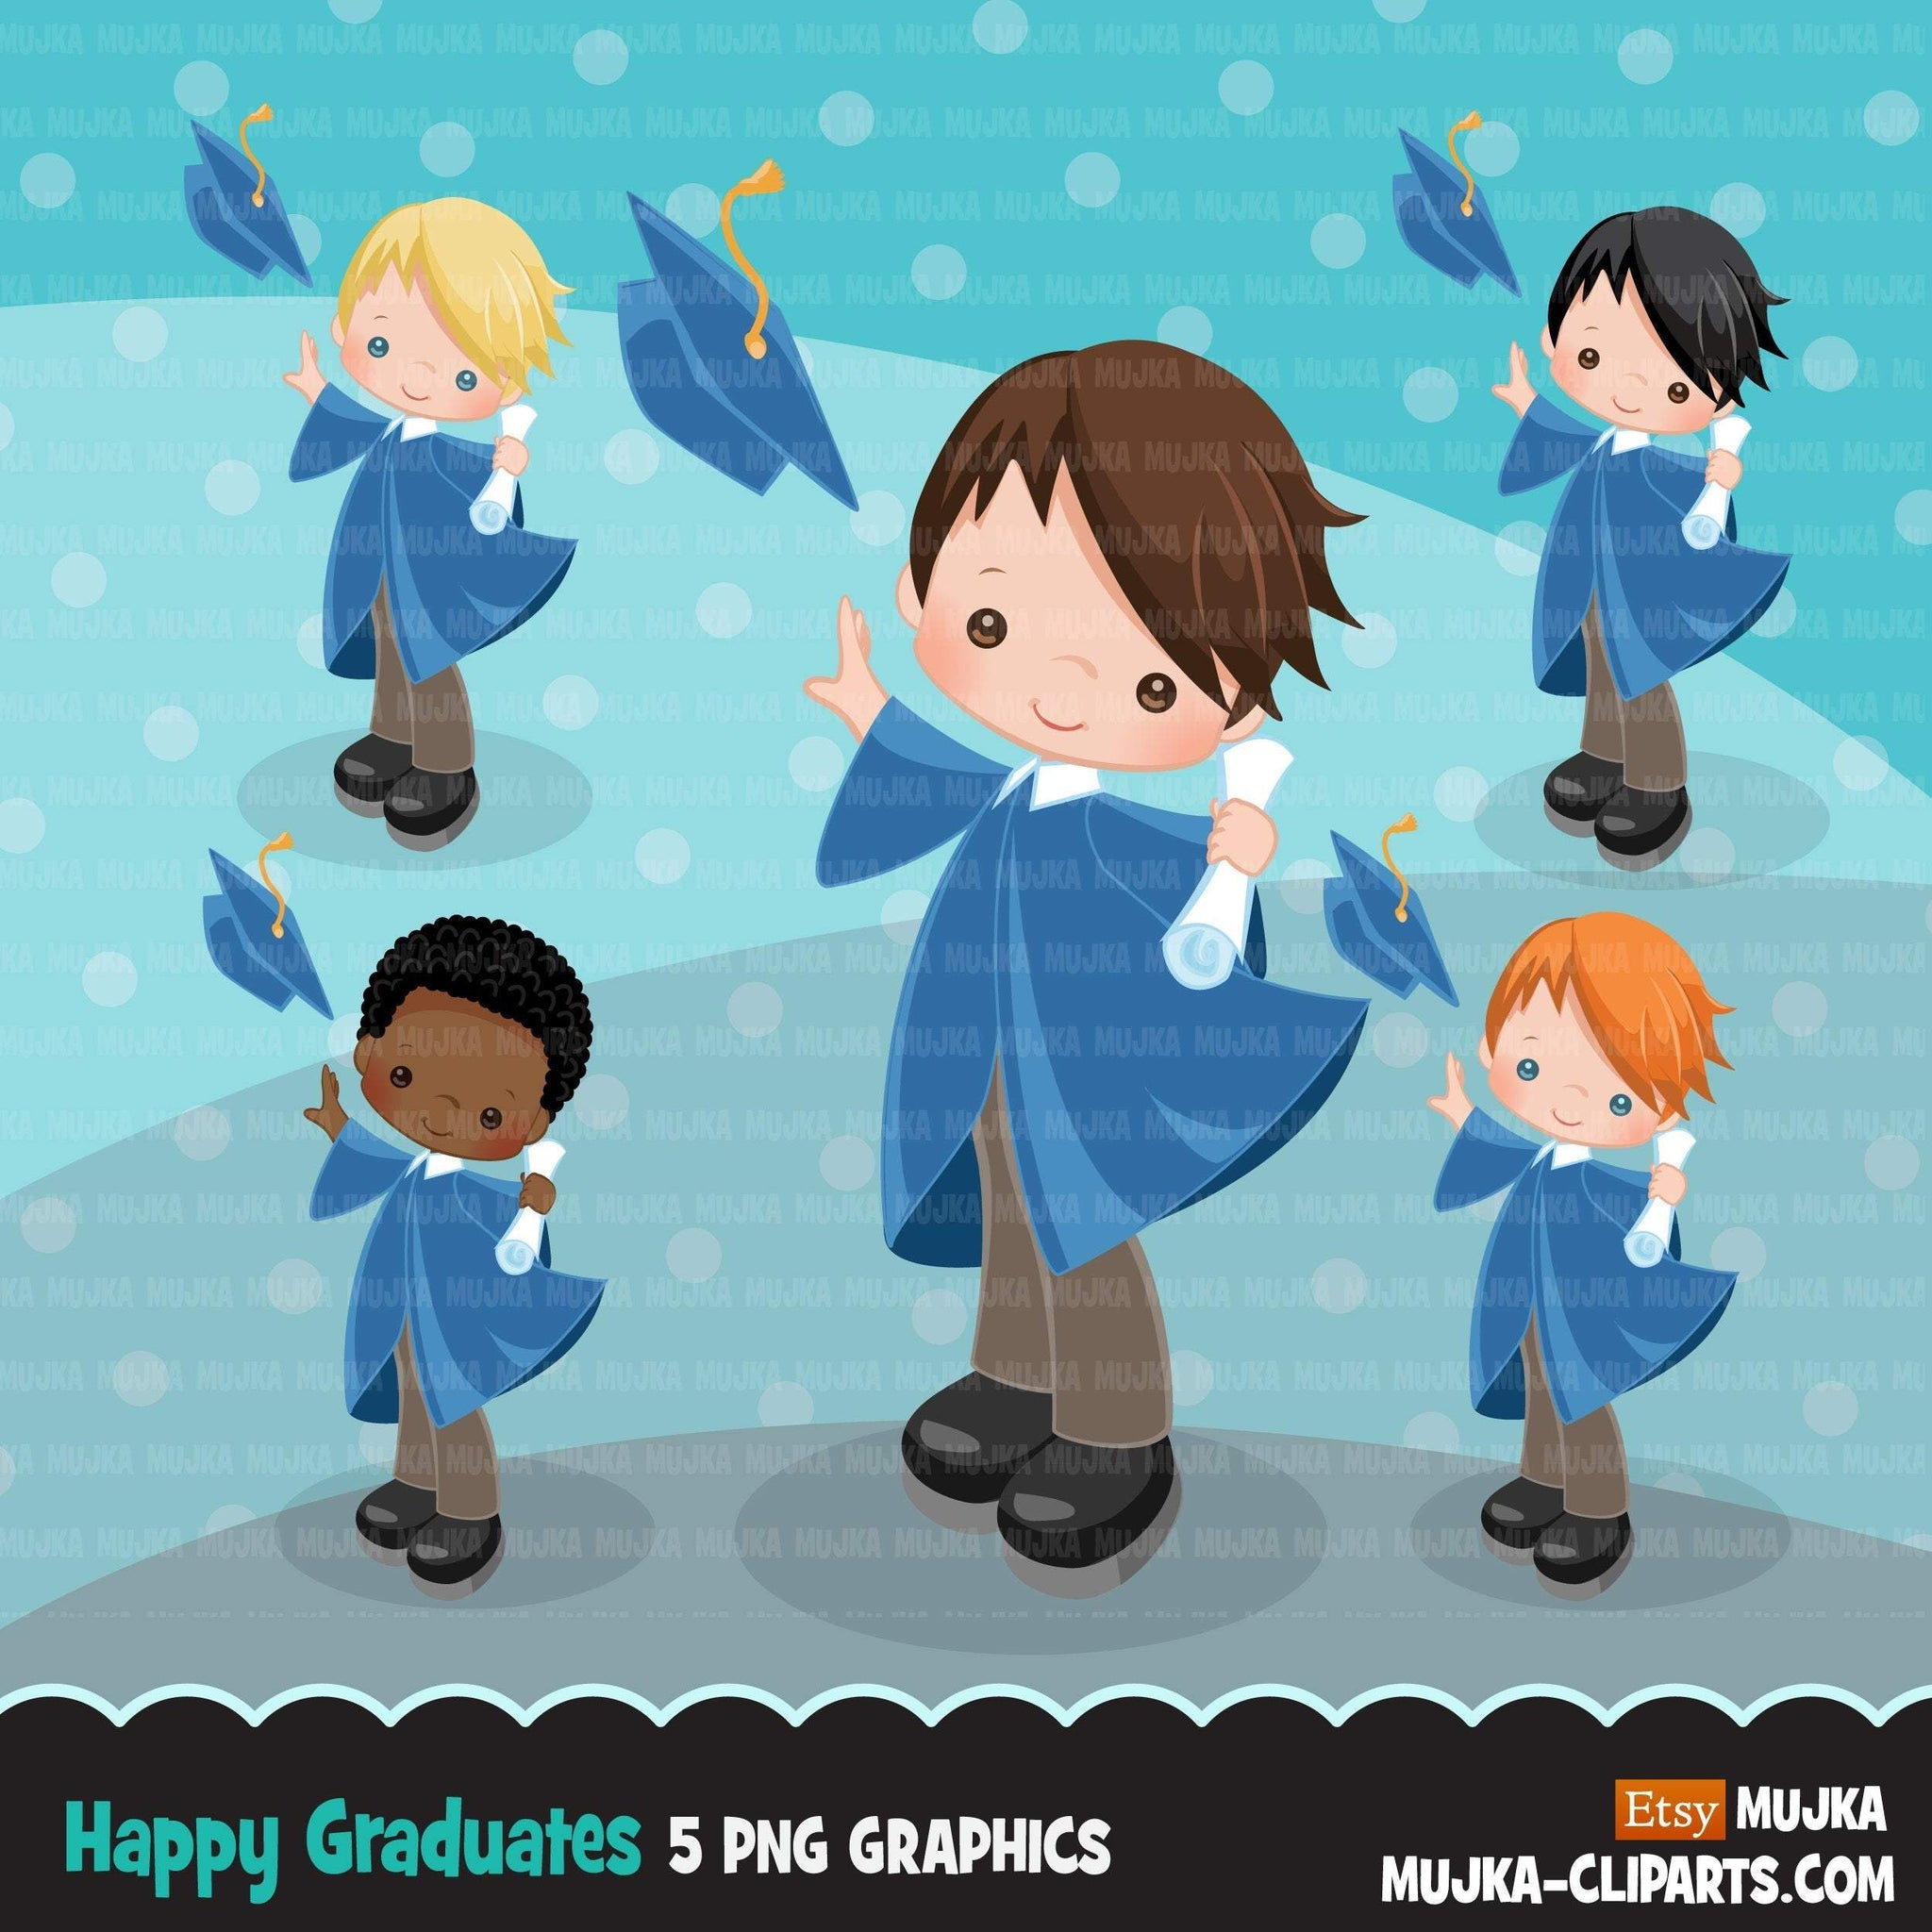 Graduation Clipart, School, graduate boys throwing caps with blue cape, students, grads, commercial use Png clip art